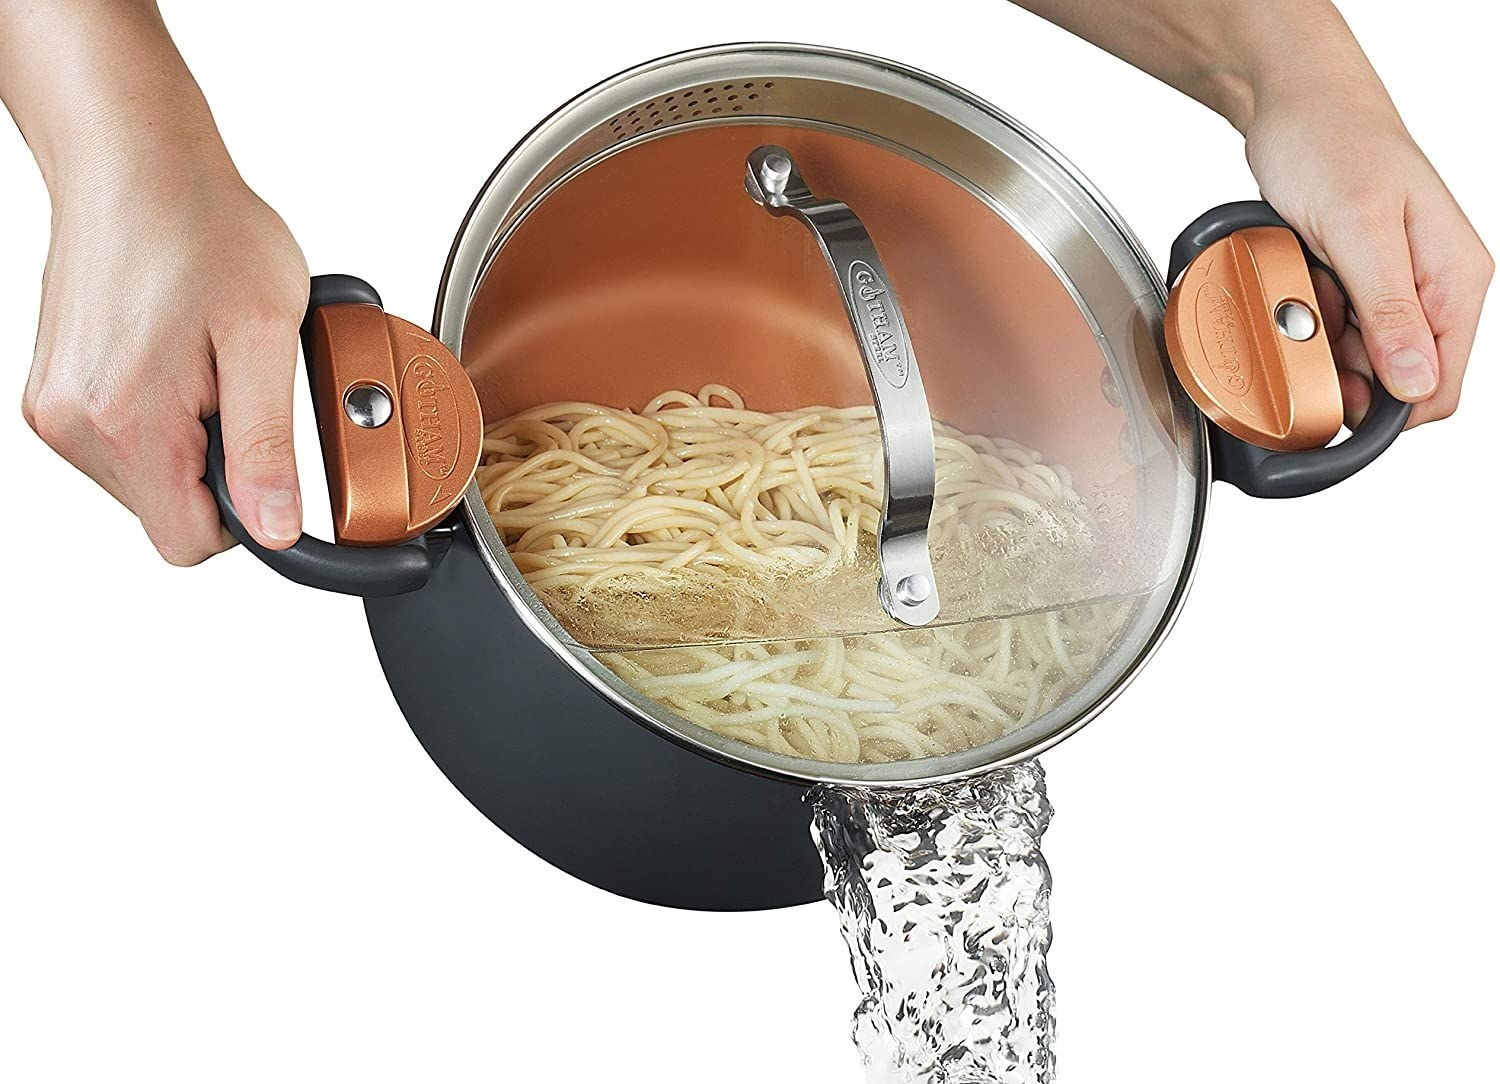 a pair of hands holding the pot as it drains